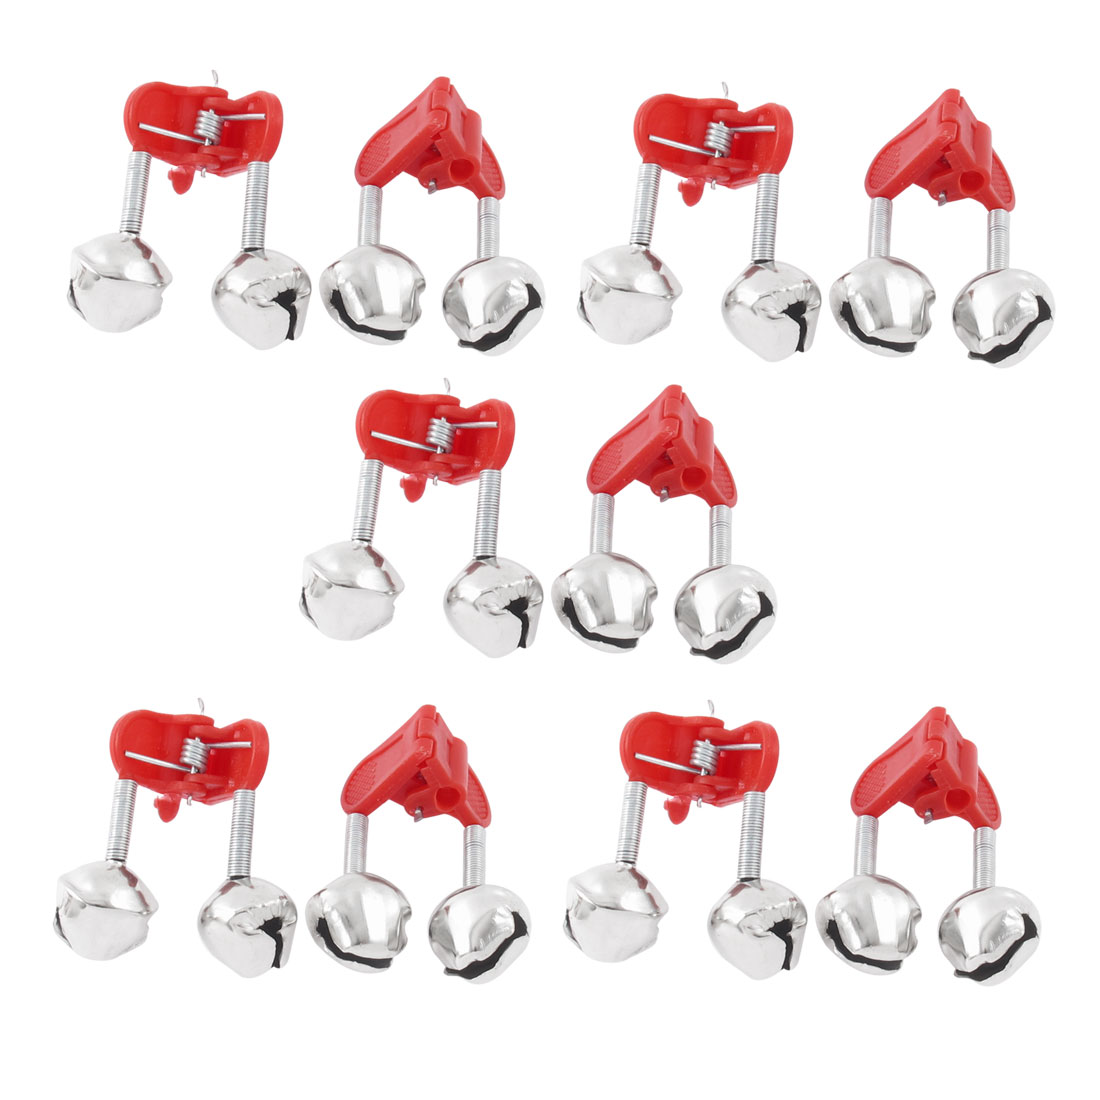 10pcs Fishing Rod Clamp Tip Fish Bite Lure Alarm Alert Clip Twin Bells Ring Red